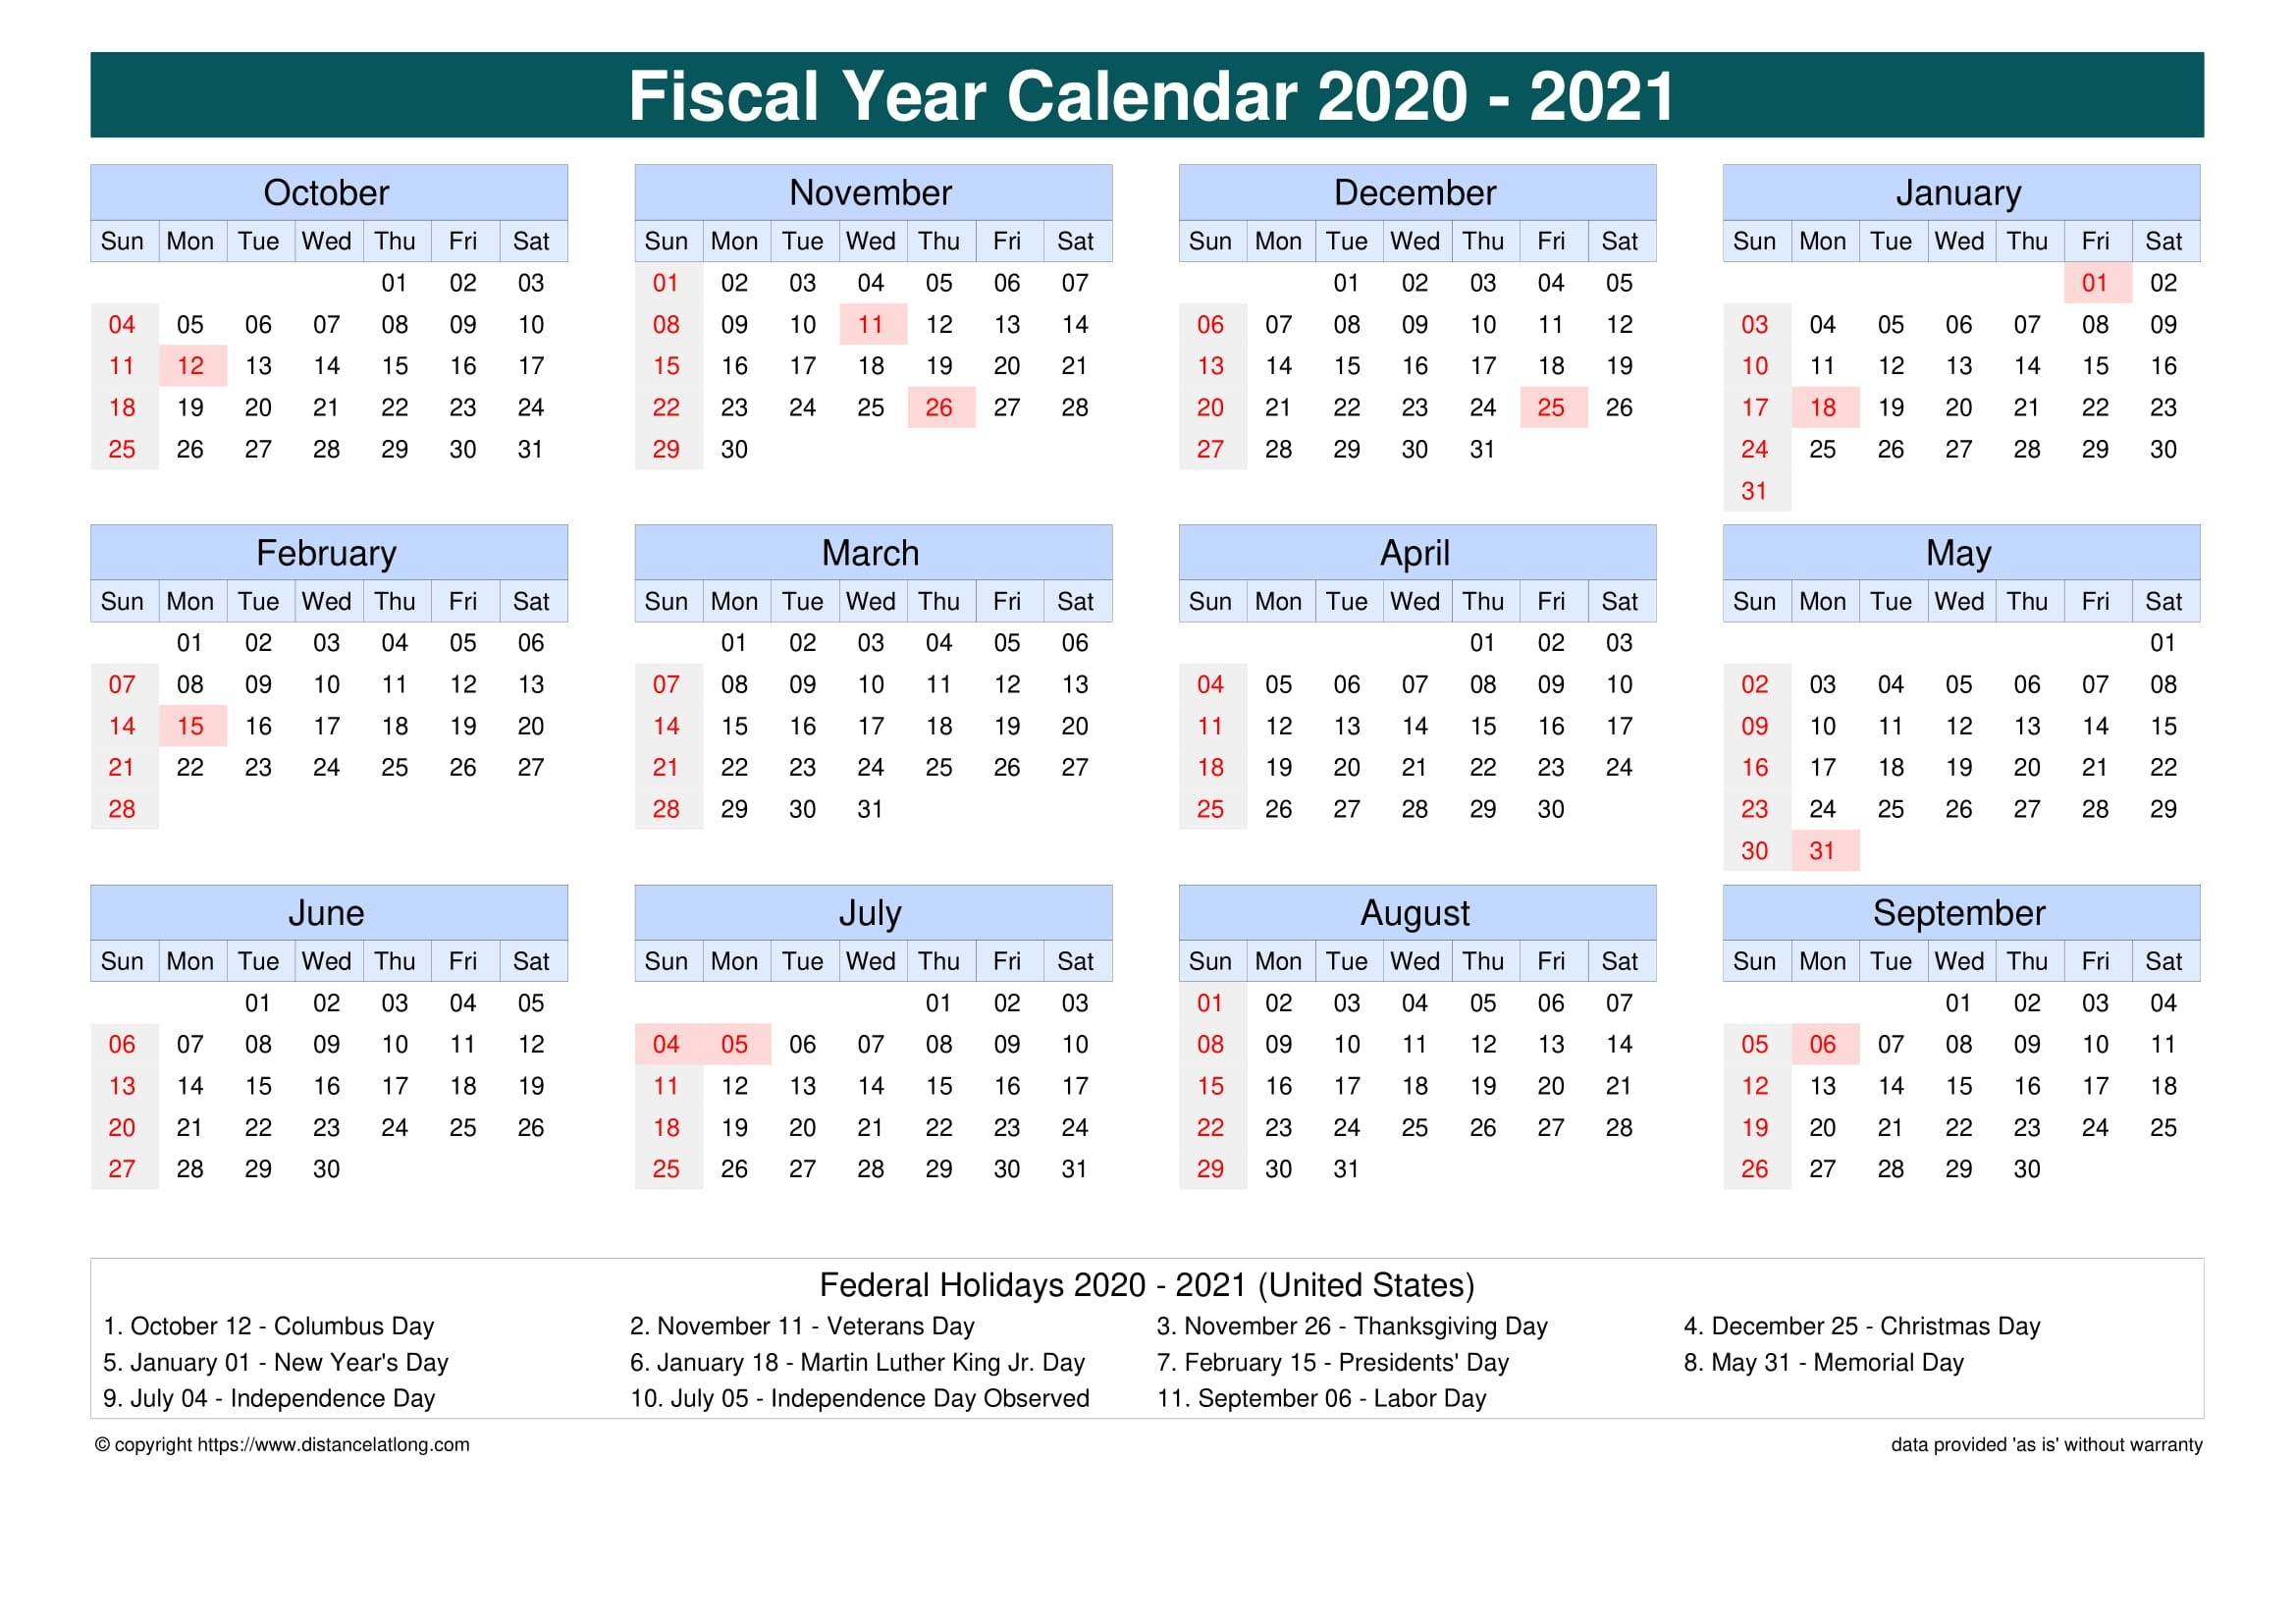 Fiscal Year 2020-2021 Calendar Templates, Free Printable  2020 2021 Financial Year Calendar